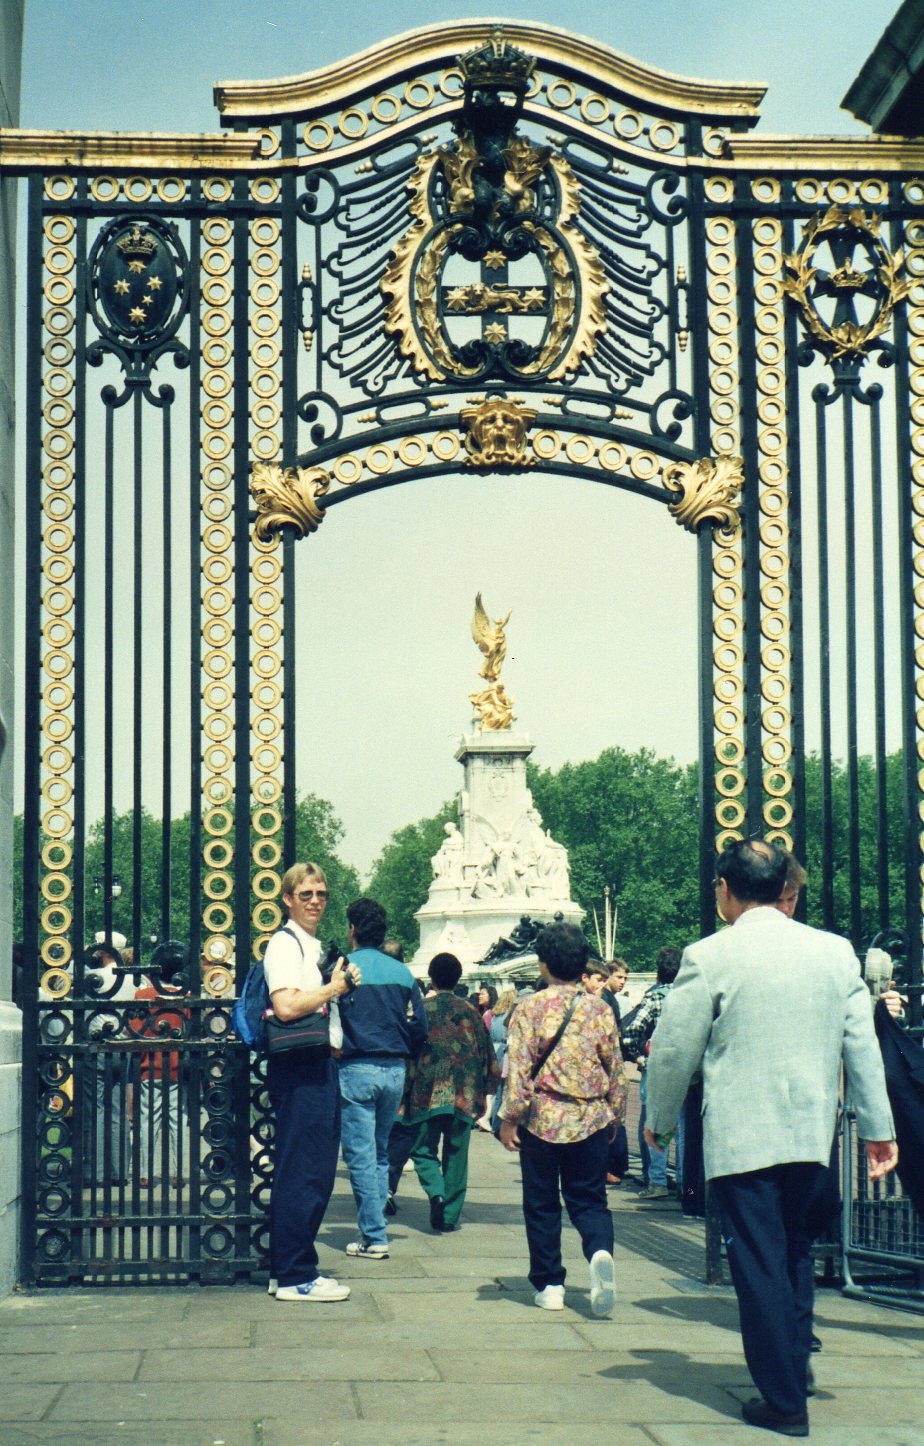 Golden gate -